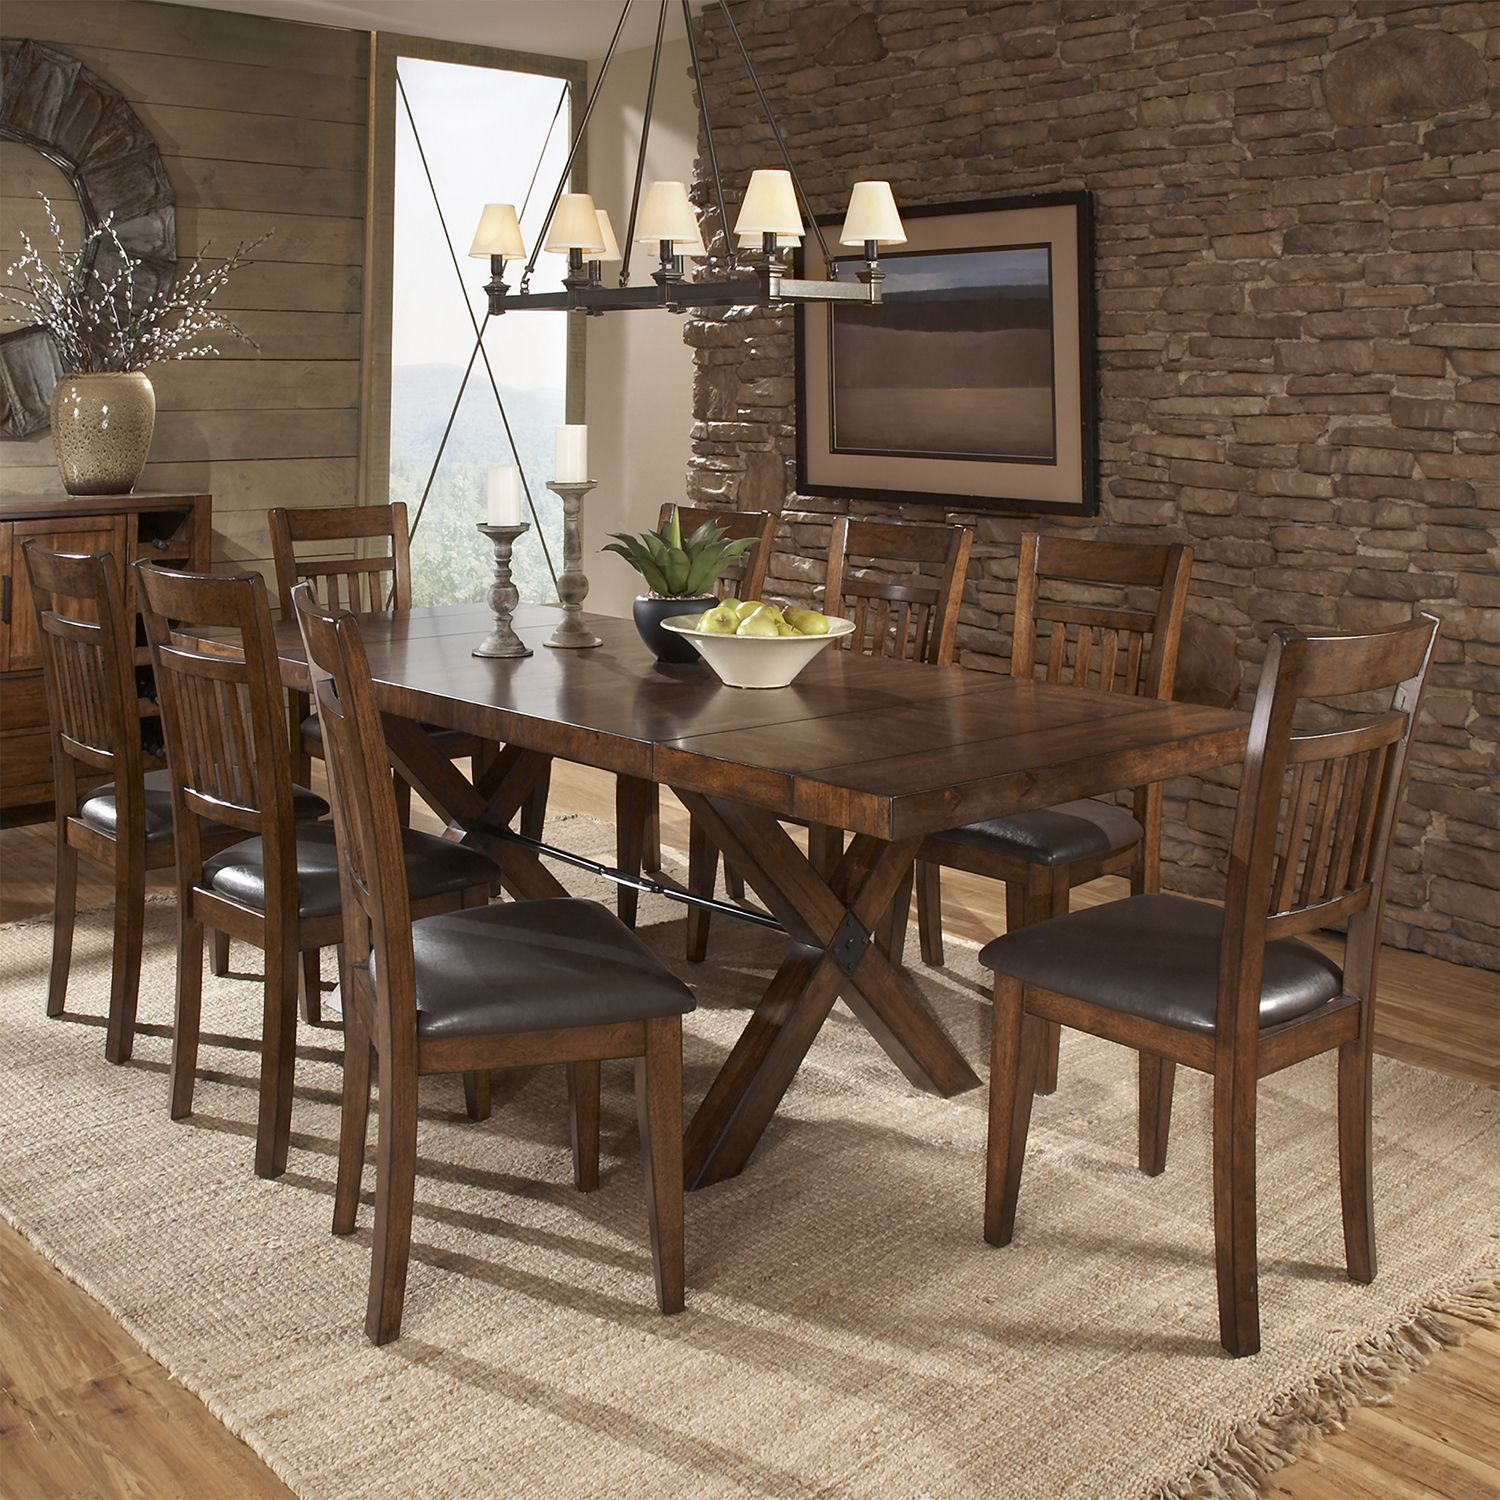 Create a contemporary look in your dining